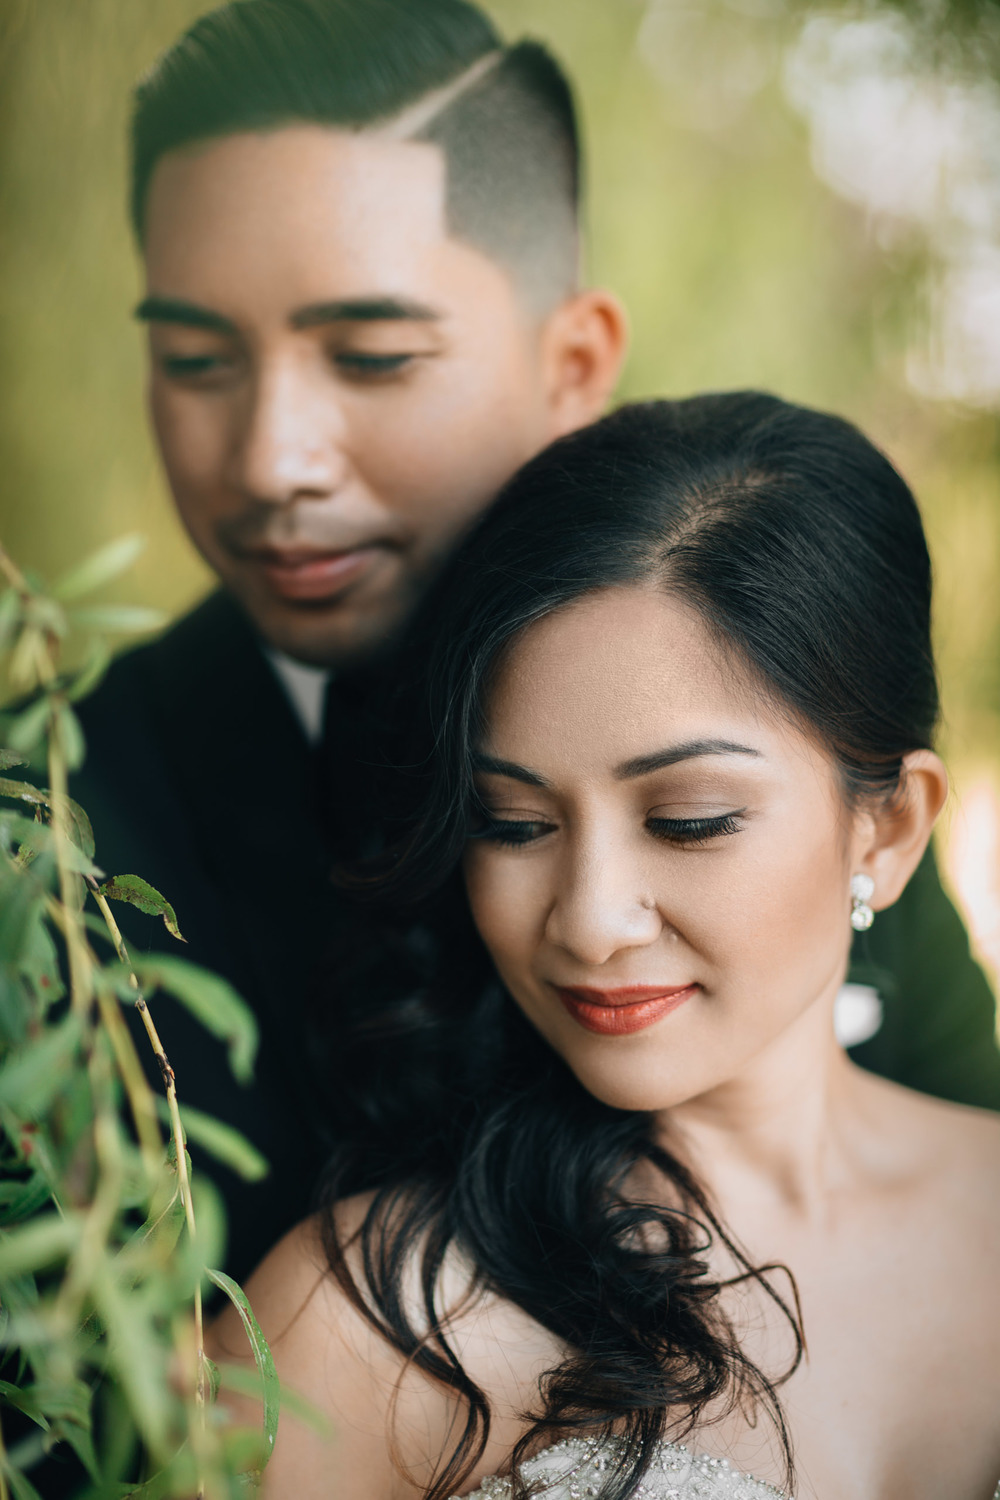 filipino wedding bride groom portraits closeup terra nova richmond